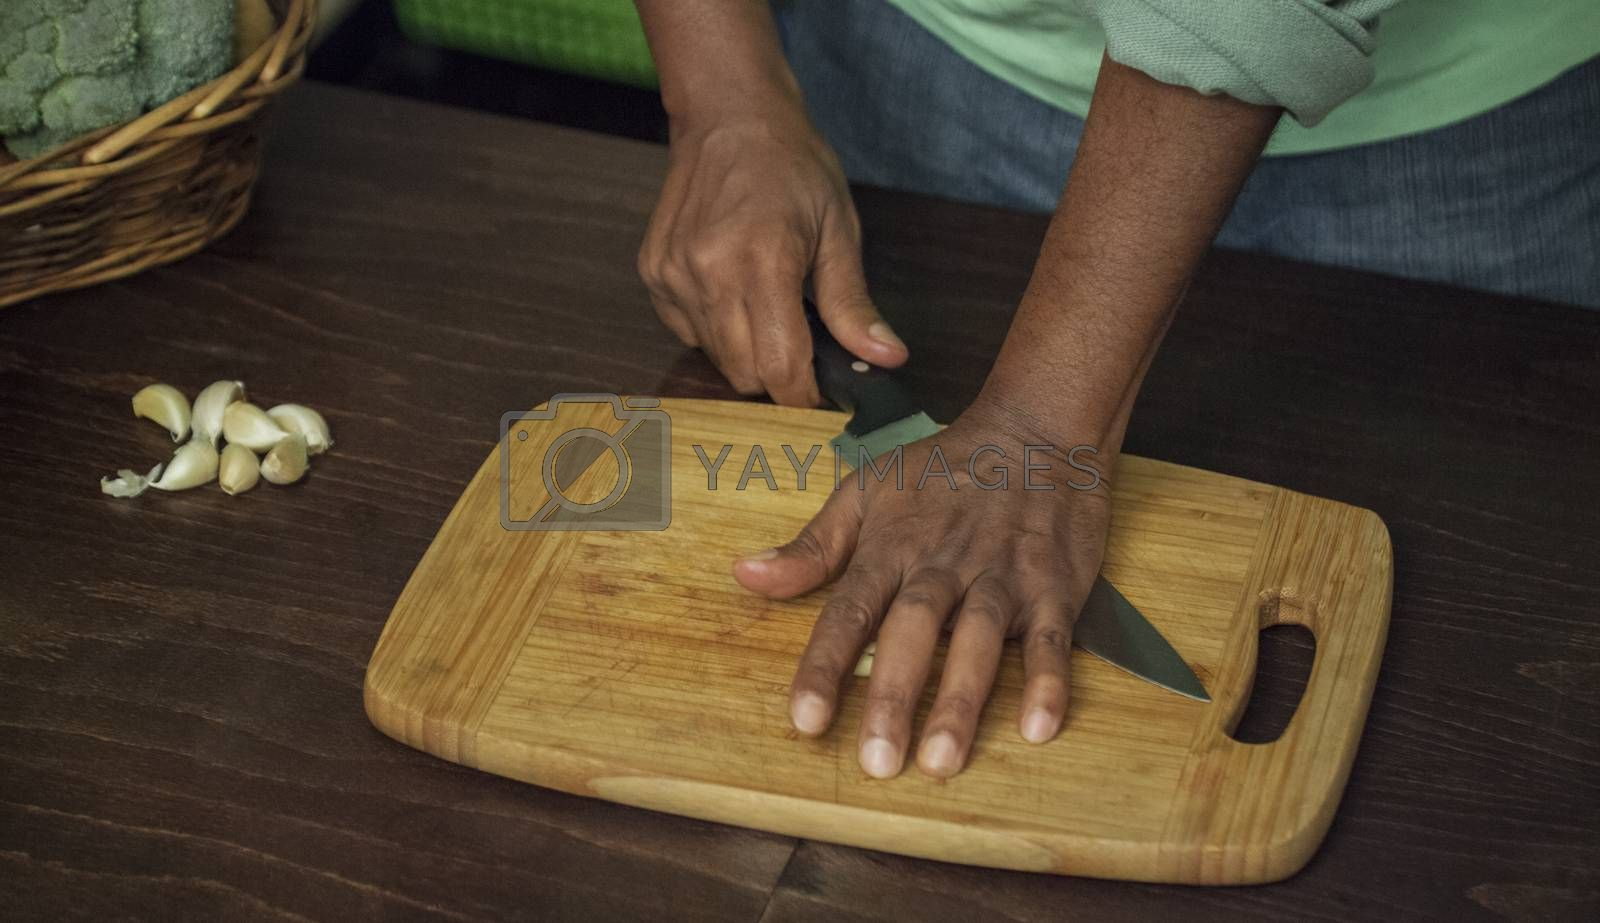 An afro-american man s hand is pressing with a knife garlic on a wooden board.